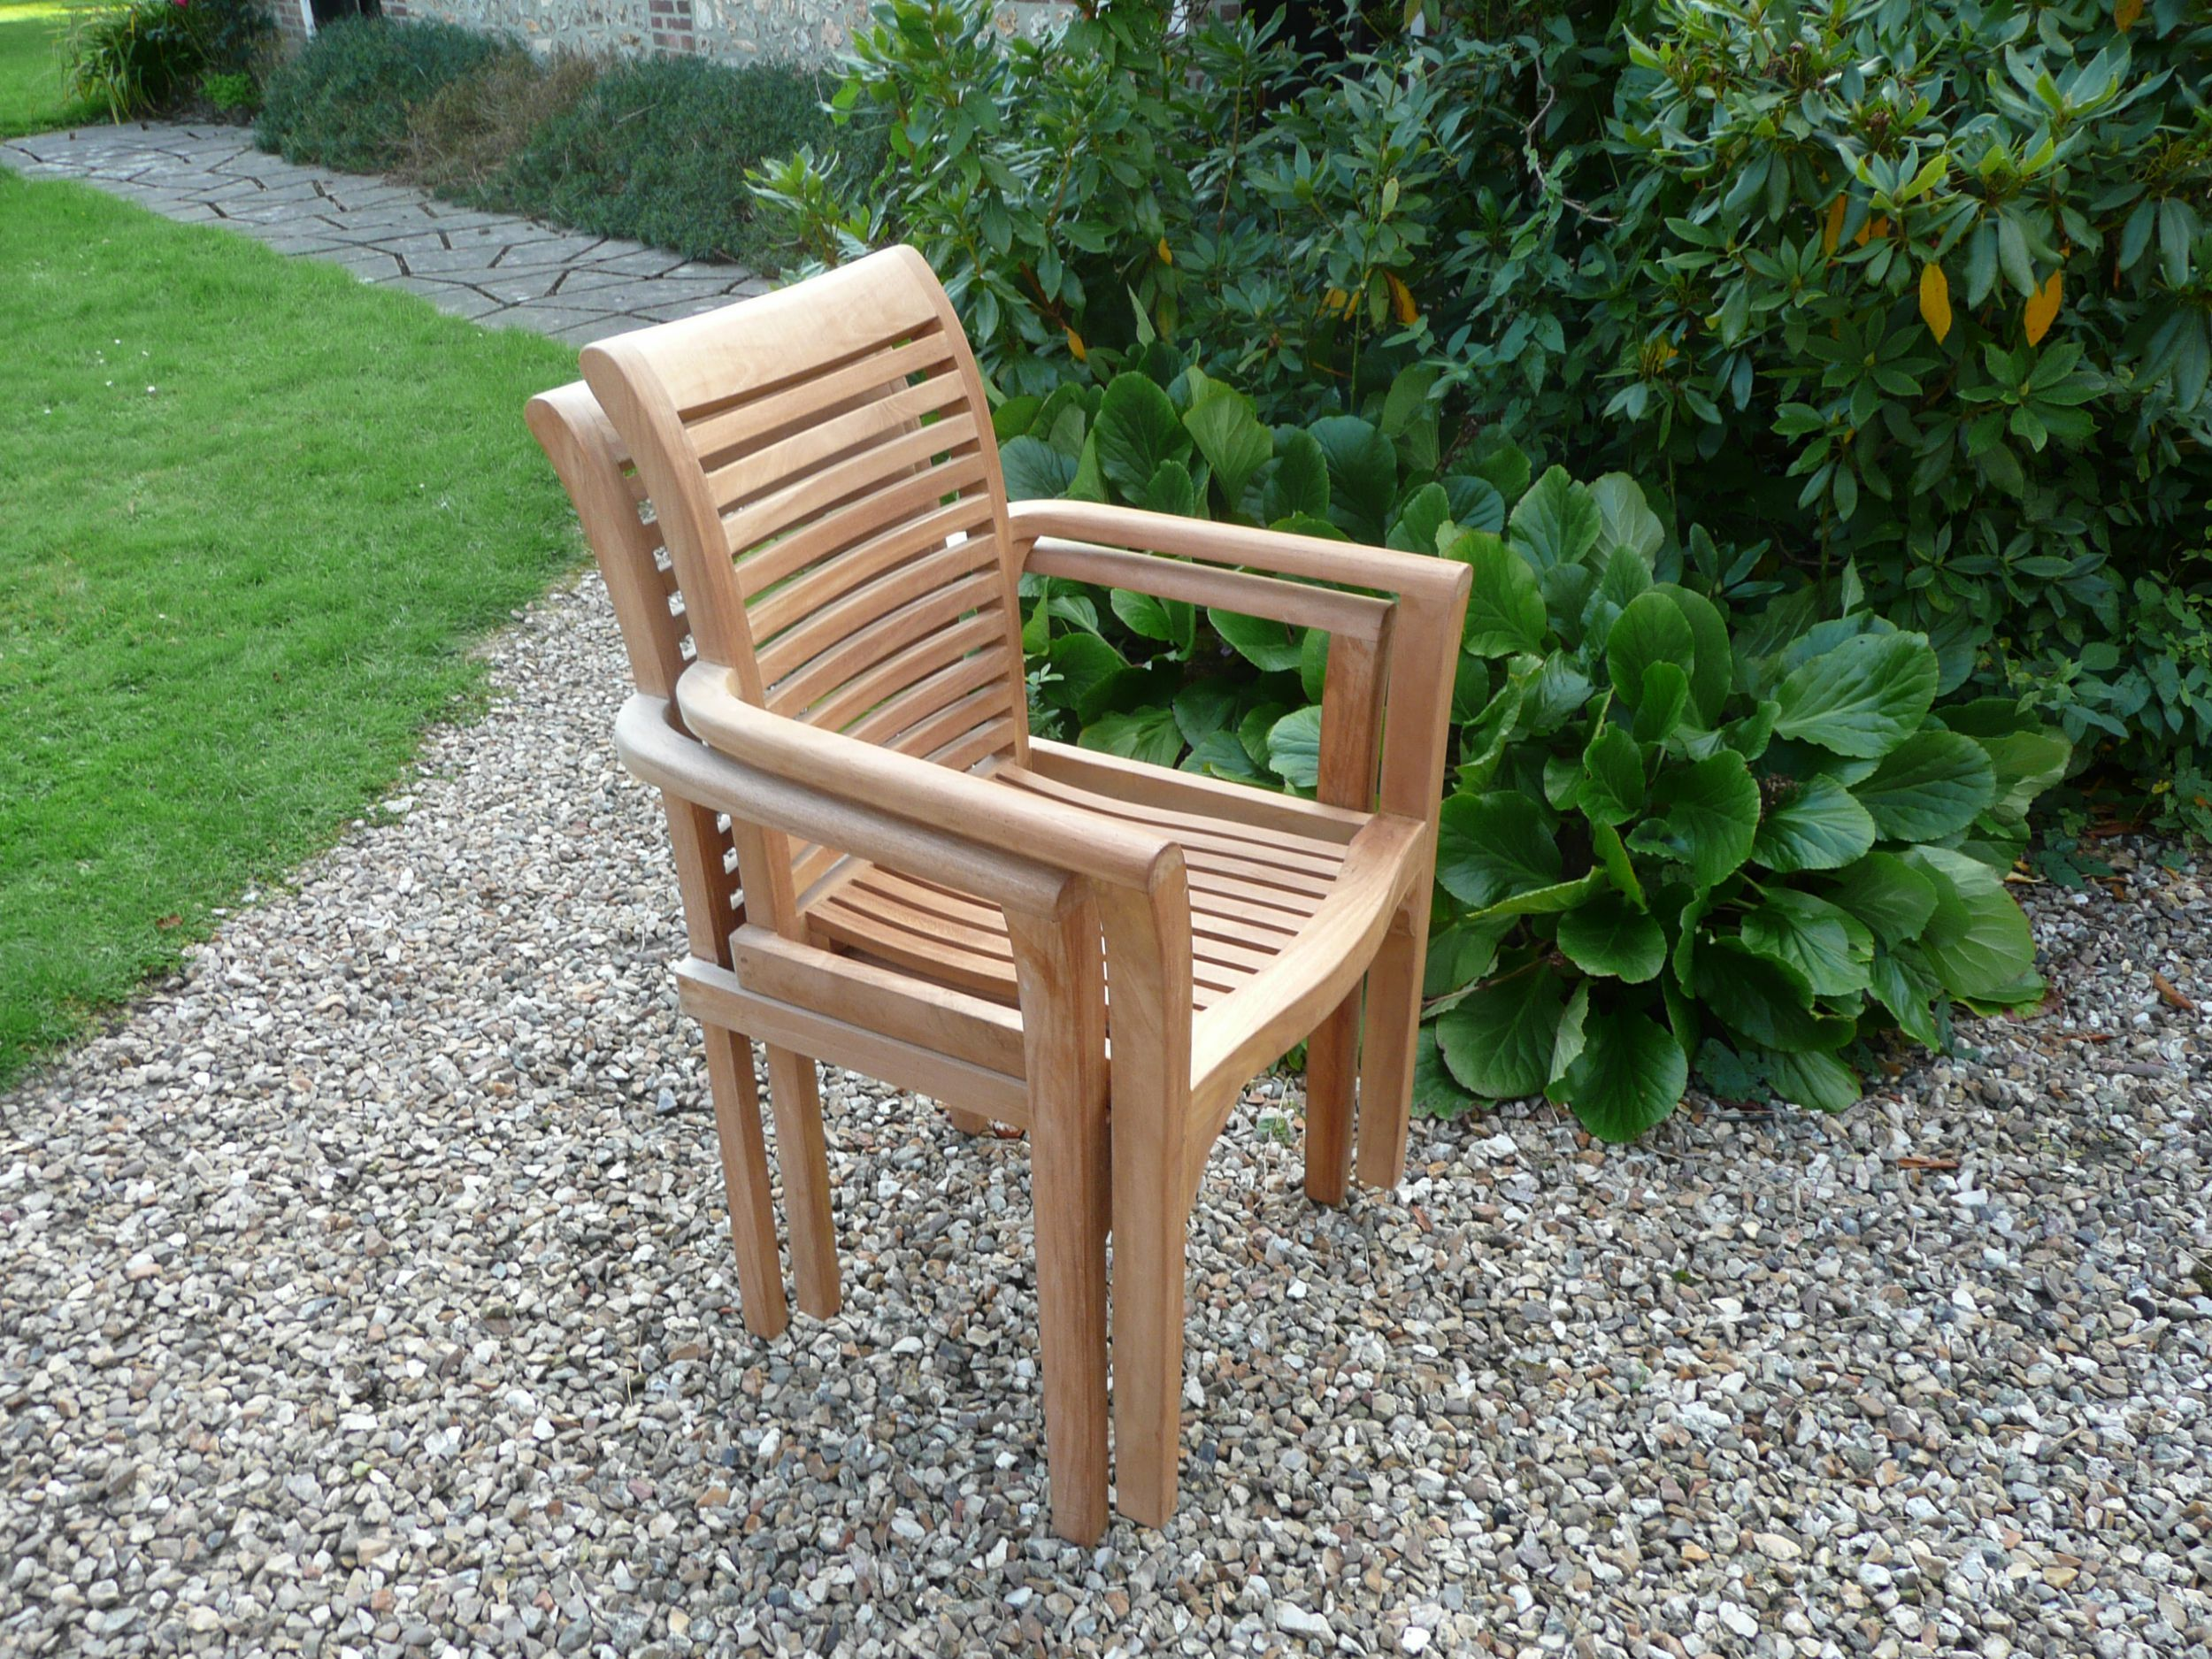 deauville 8 seater teak garden furniture set YURLSZI